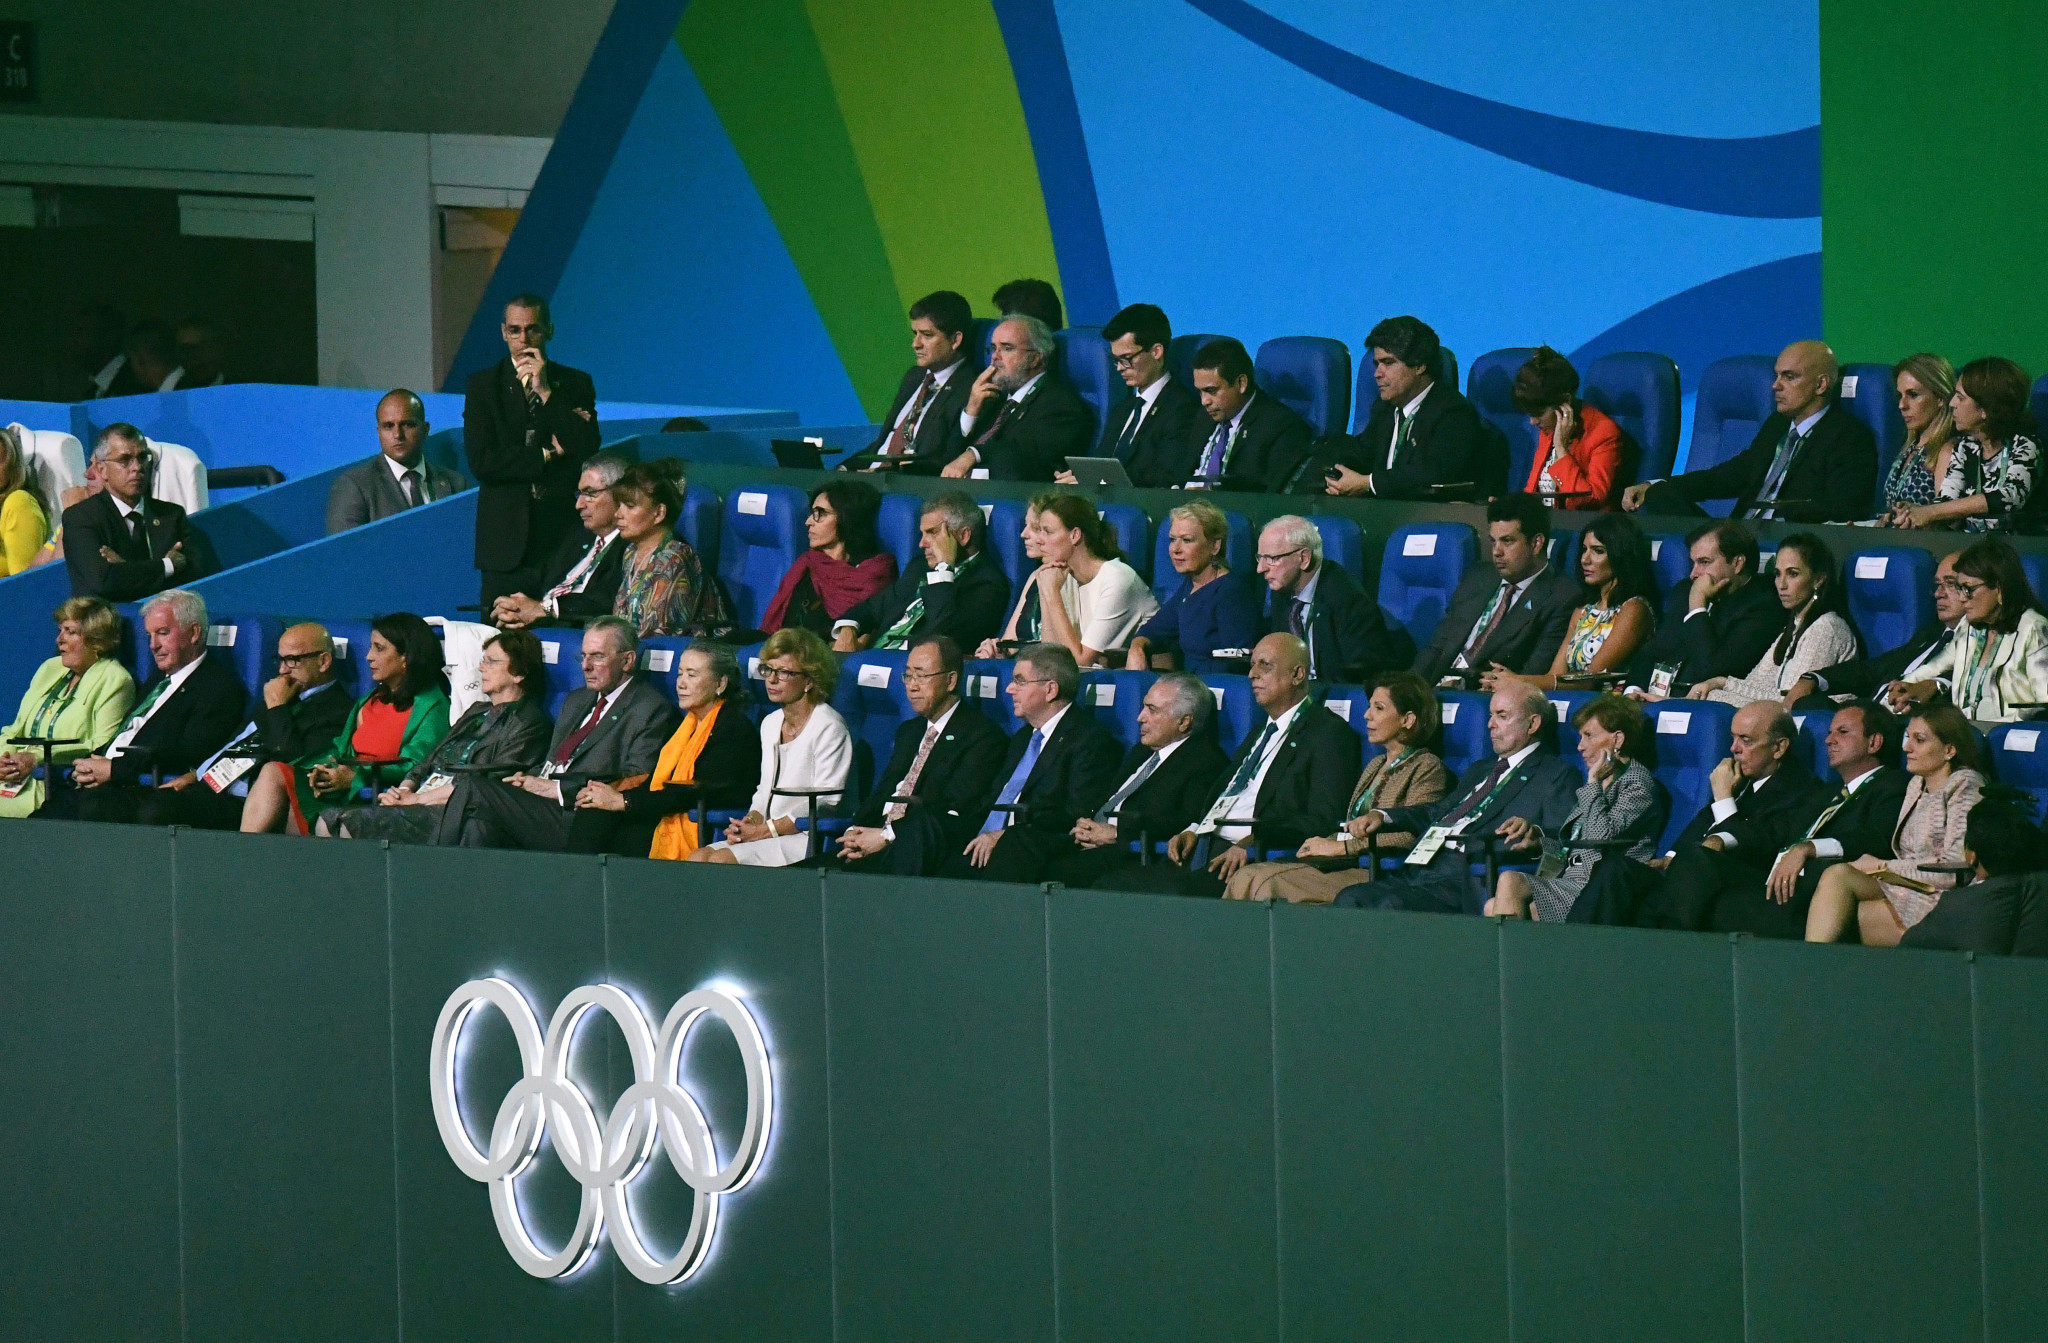 Tokyo 2020 plan to cut number of officials attending Games by 10 to 15 per cent